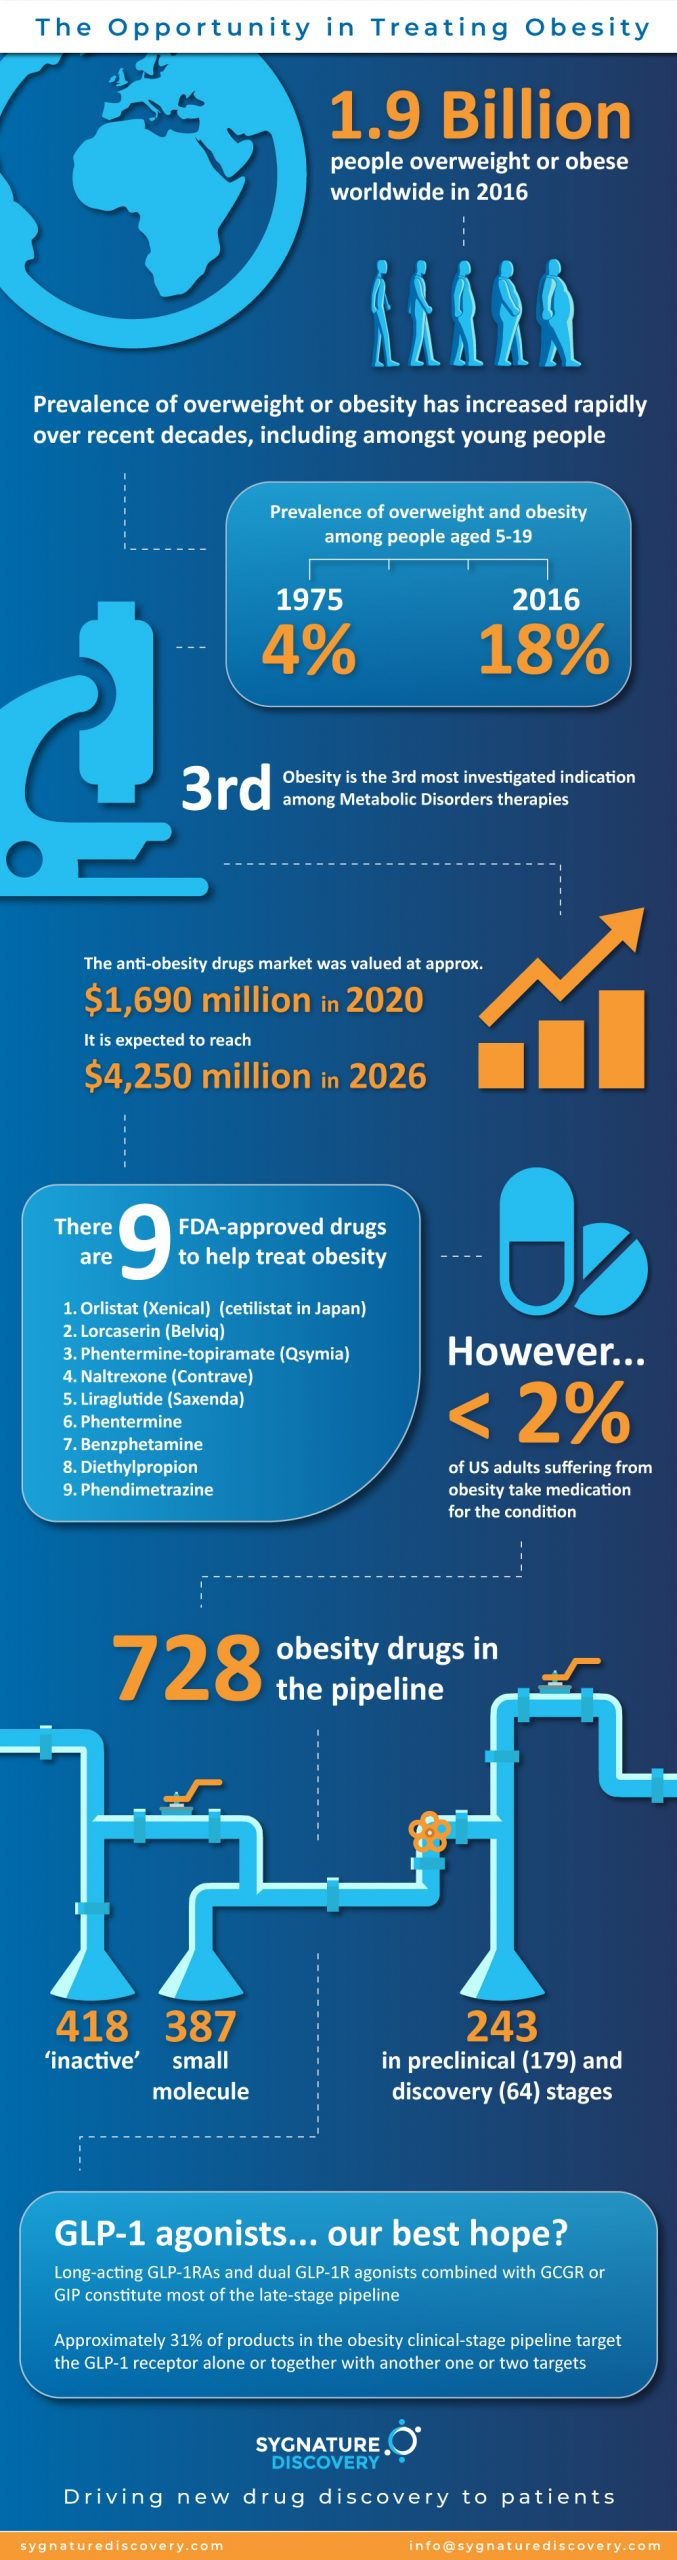 The opportunity in treating obesity infographic